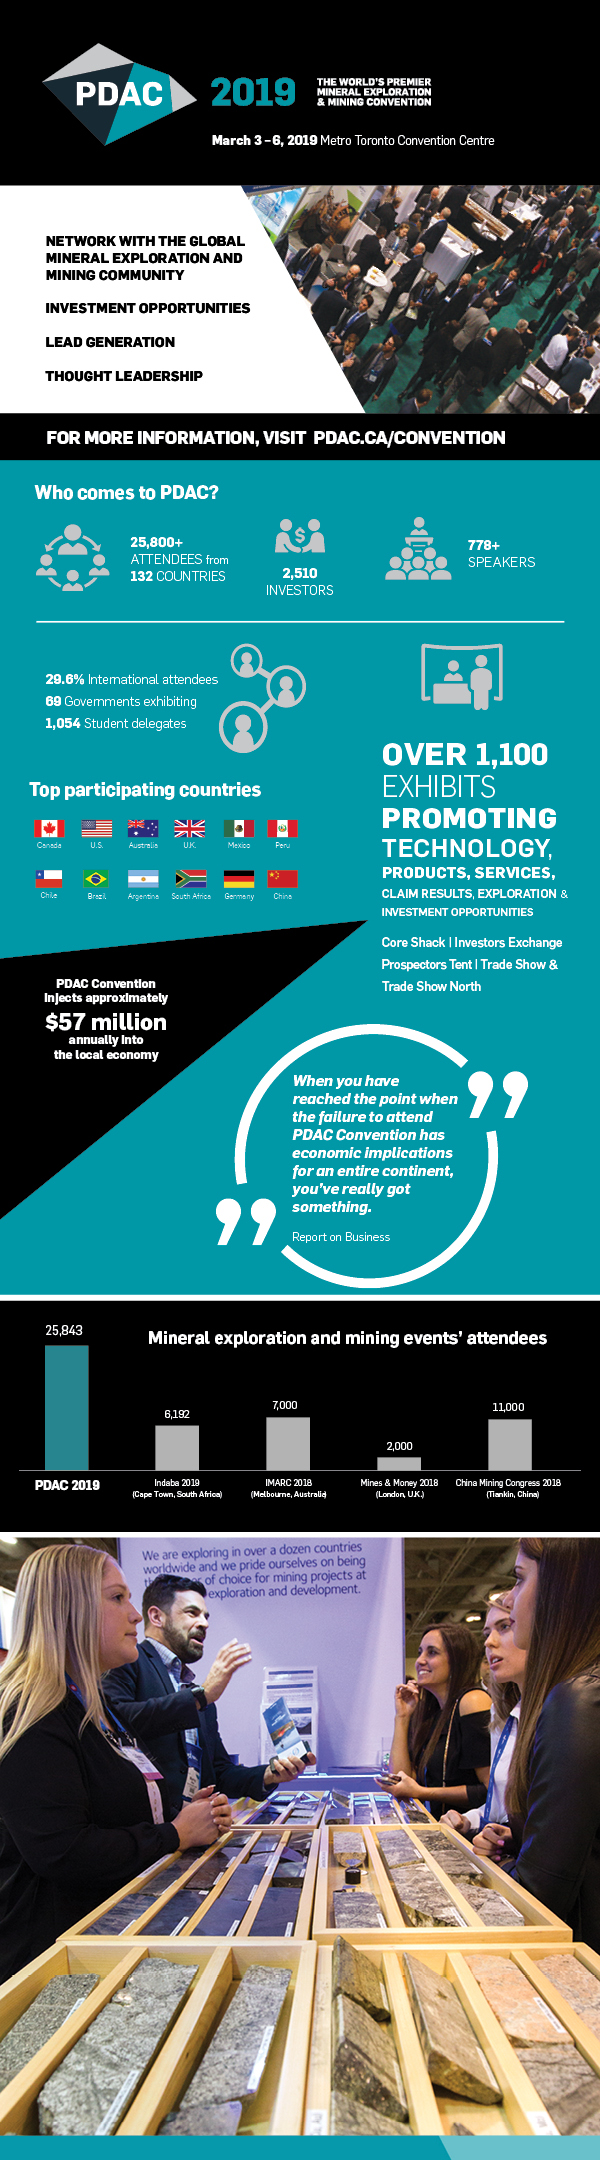 PDAC2019-Convention-Infographic